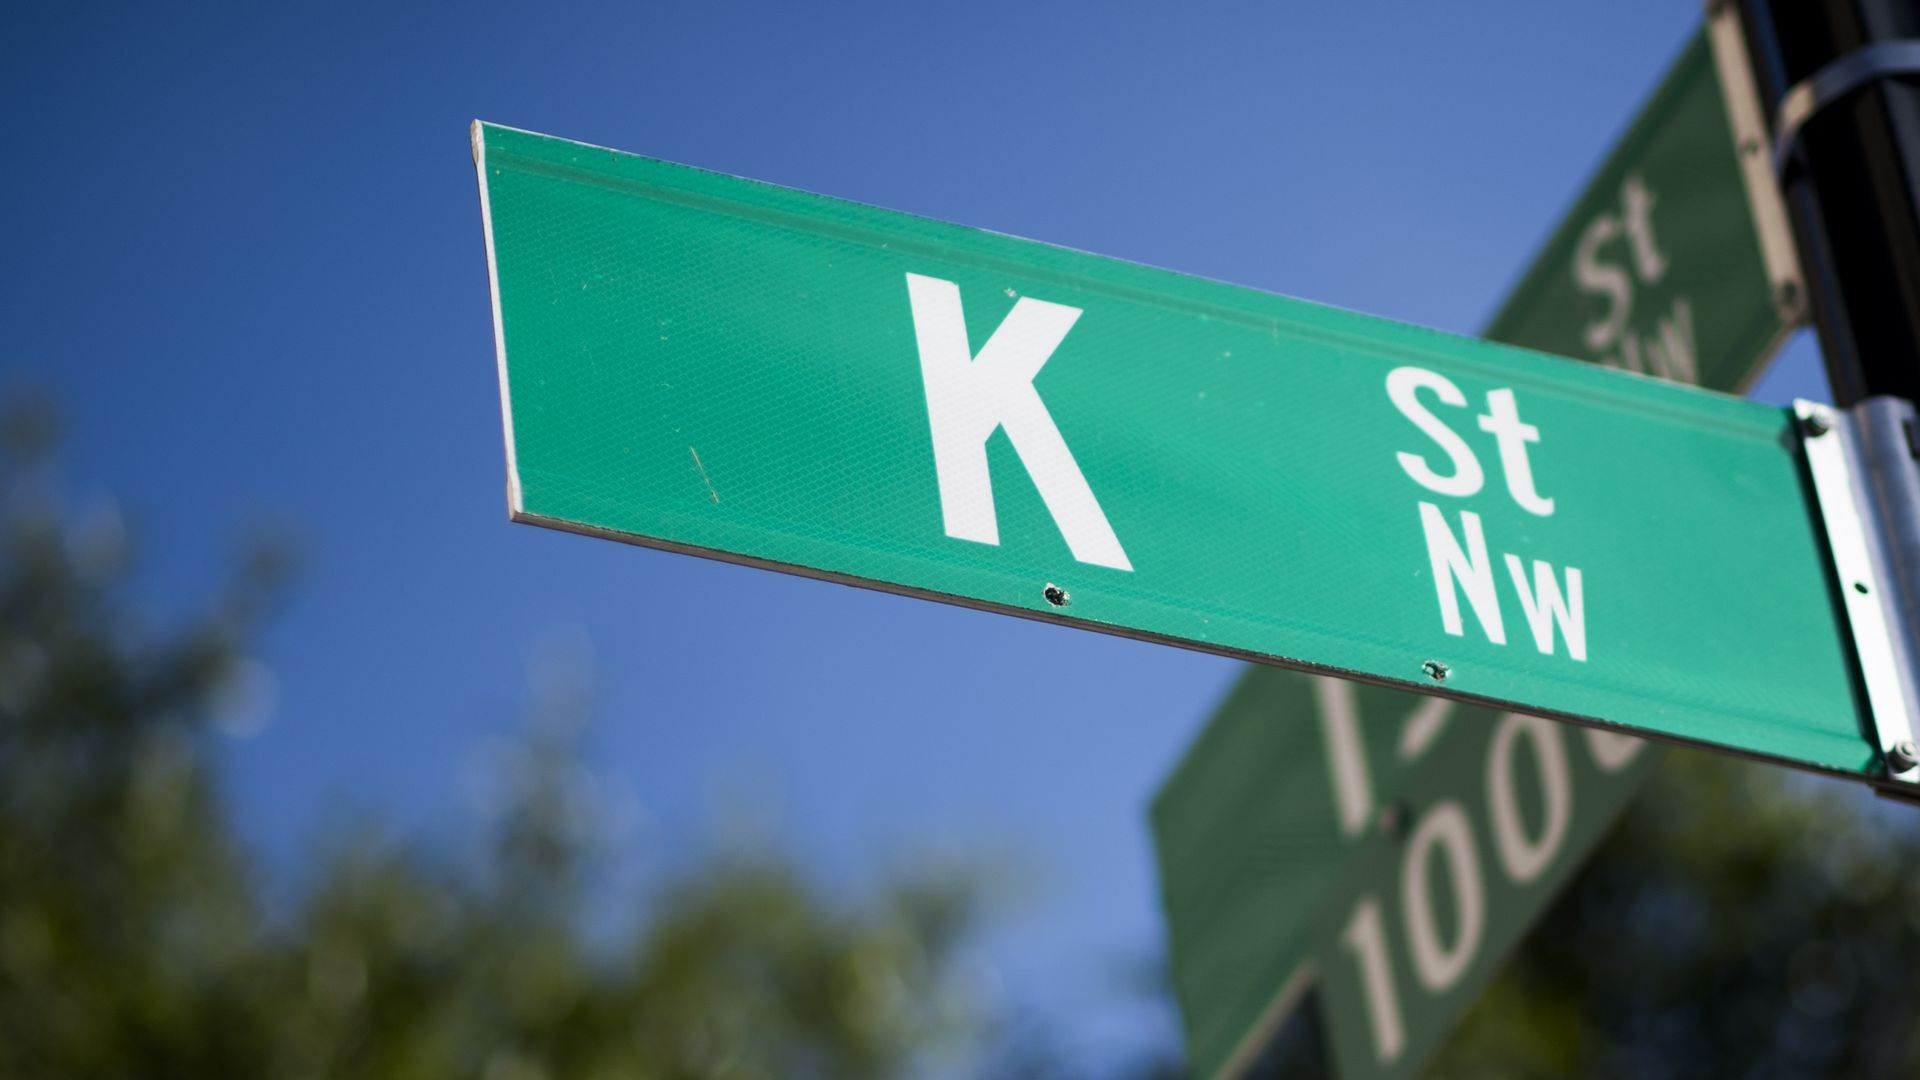 Street sign for K Street in Washington, DC